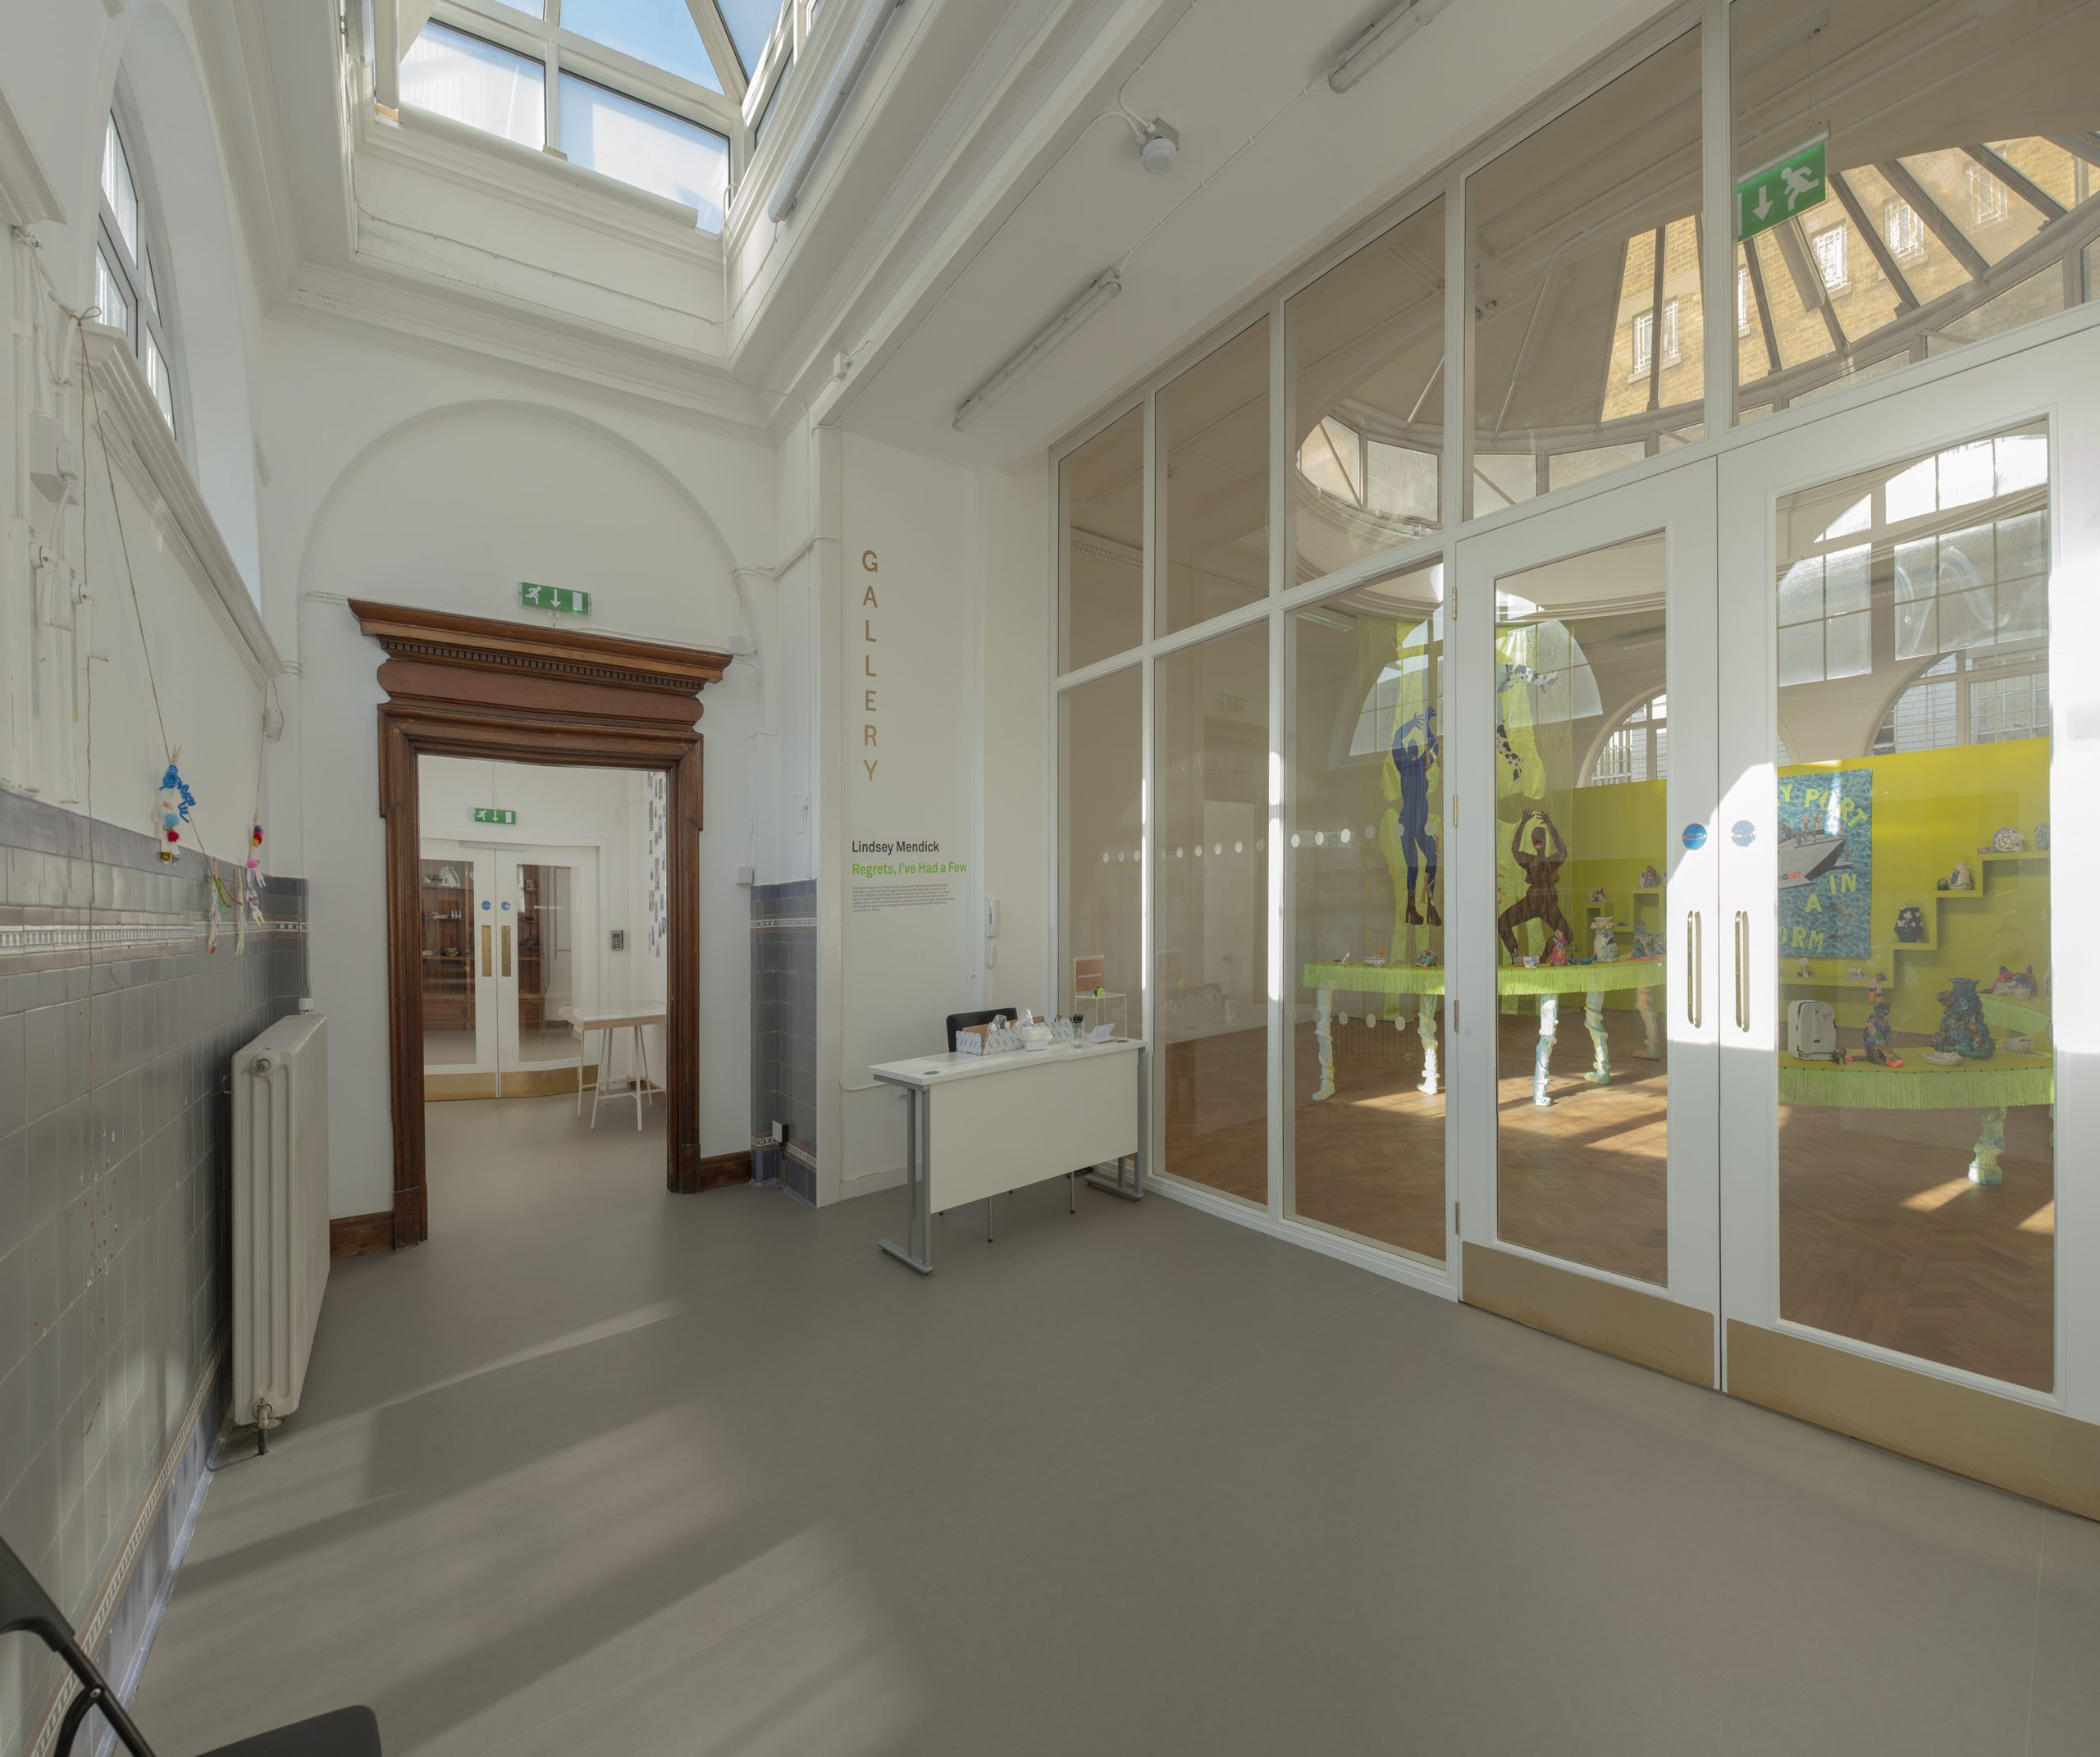 SPACE Ilford Gallery foyer interior